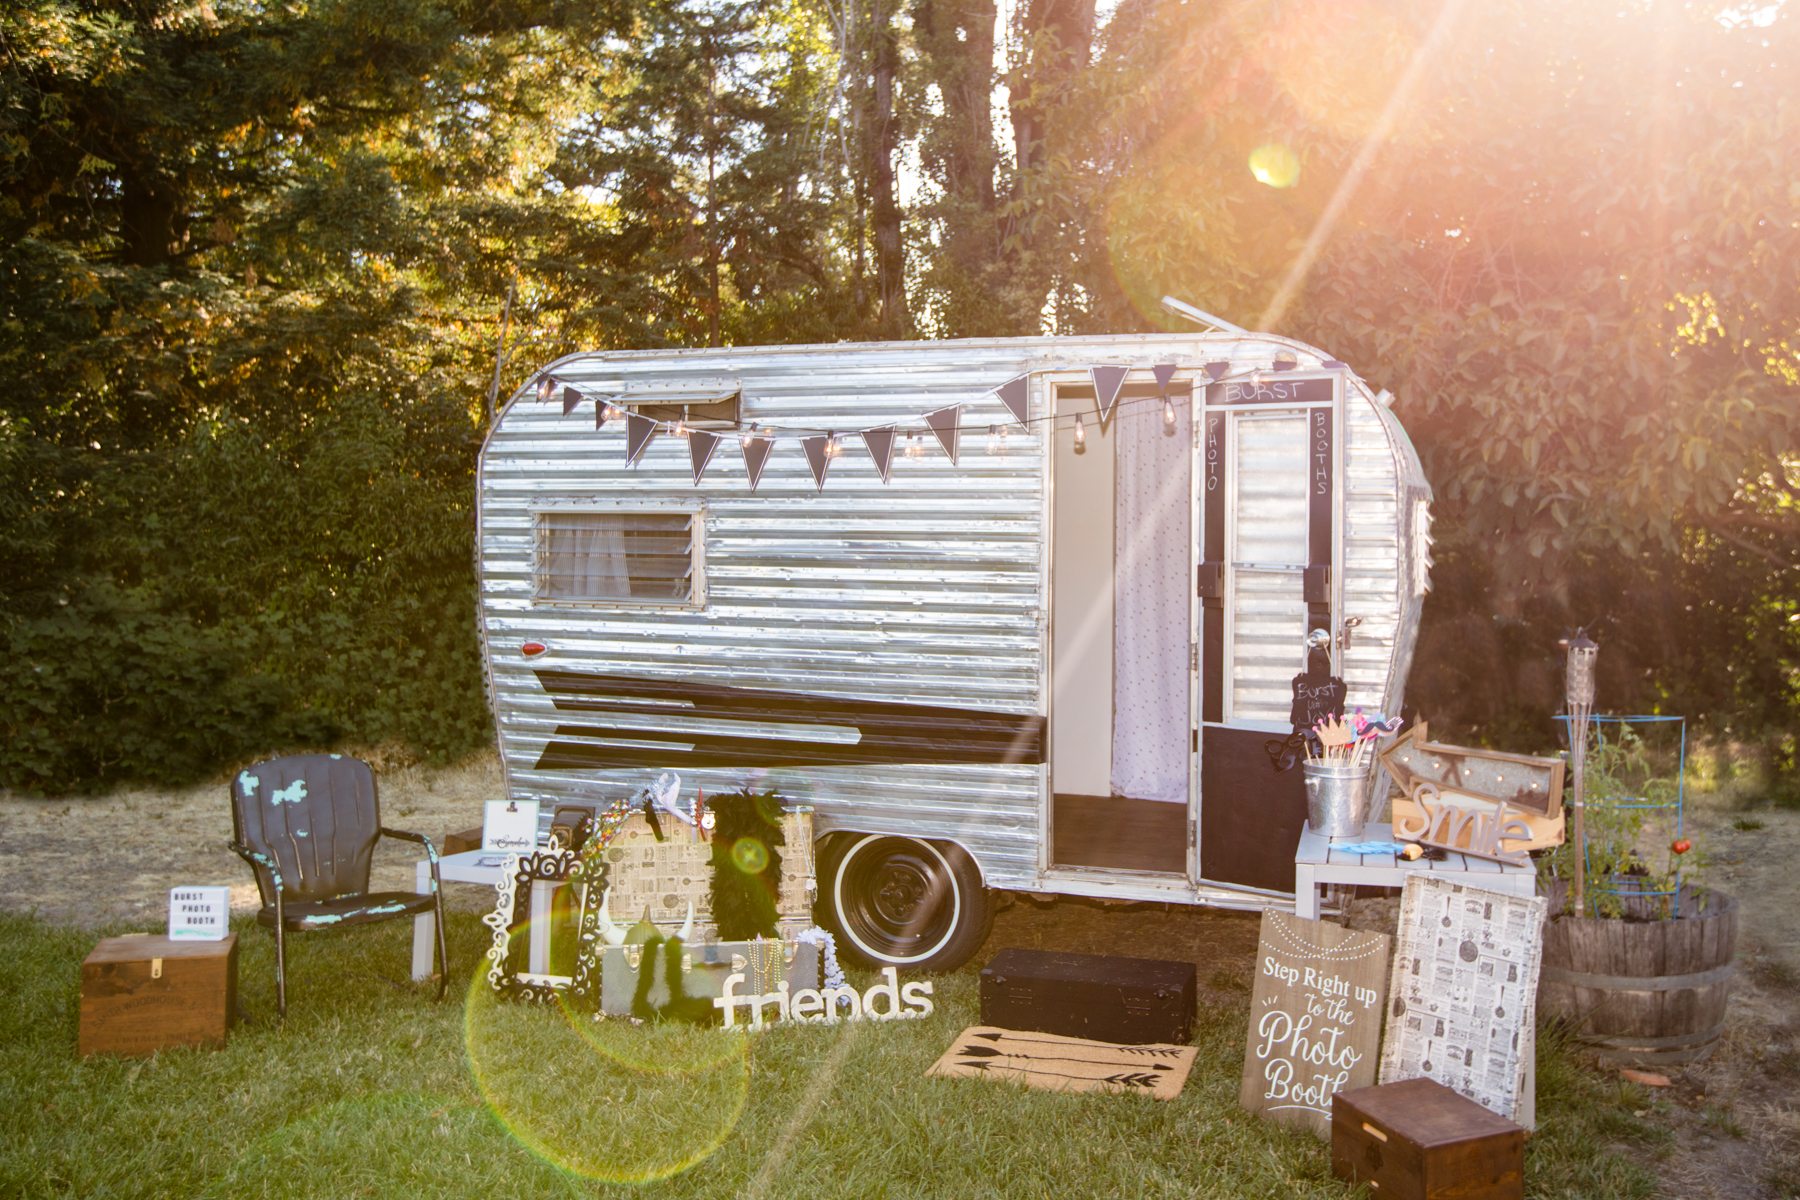 Camper Rentals - Pop up Boutiques, Photo Shoot Prop,Lounge Space